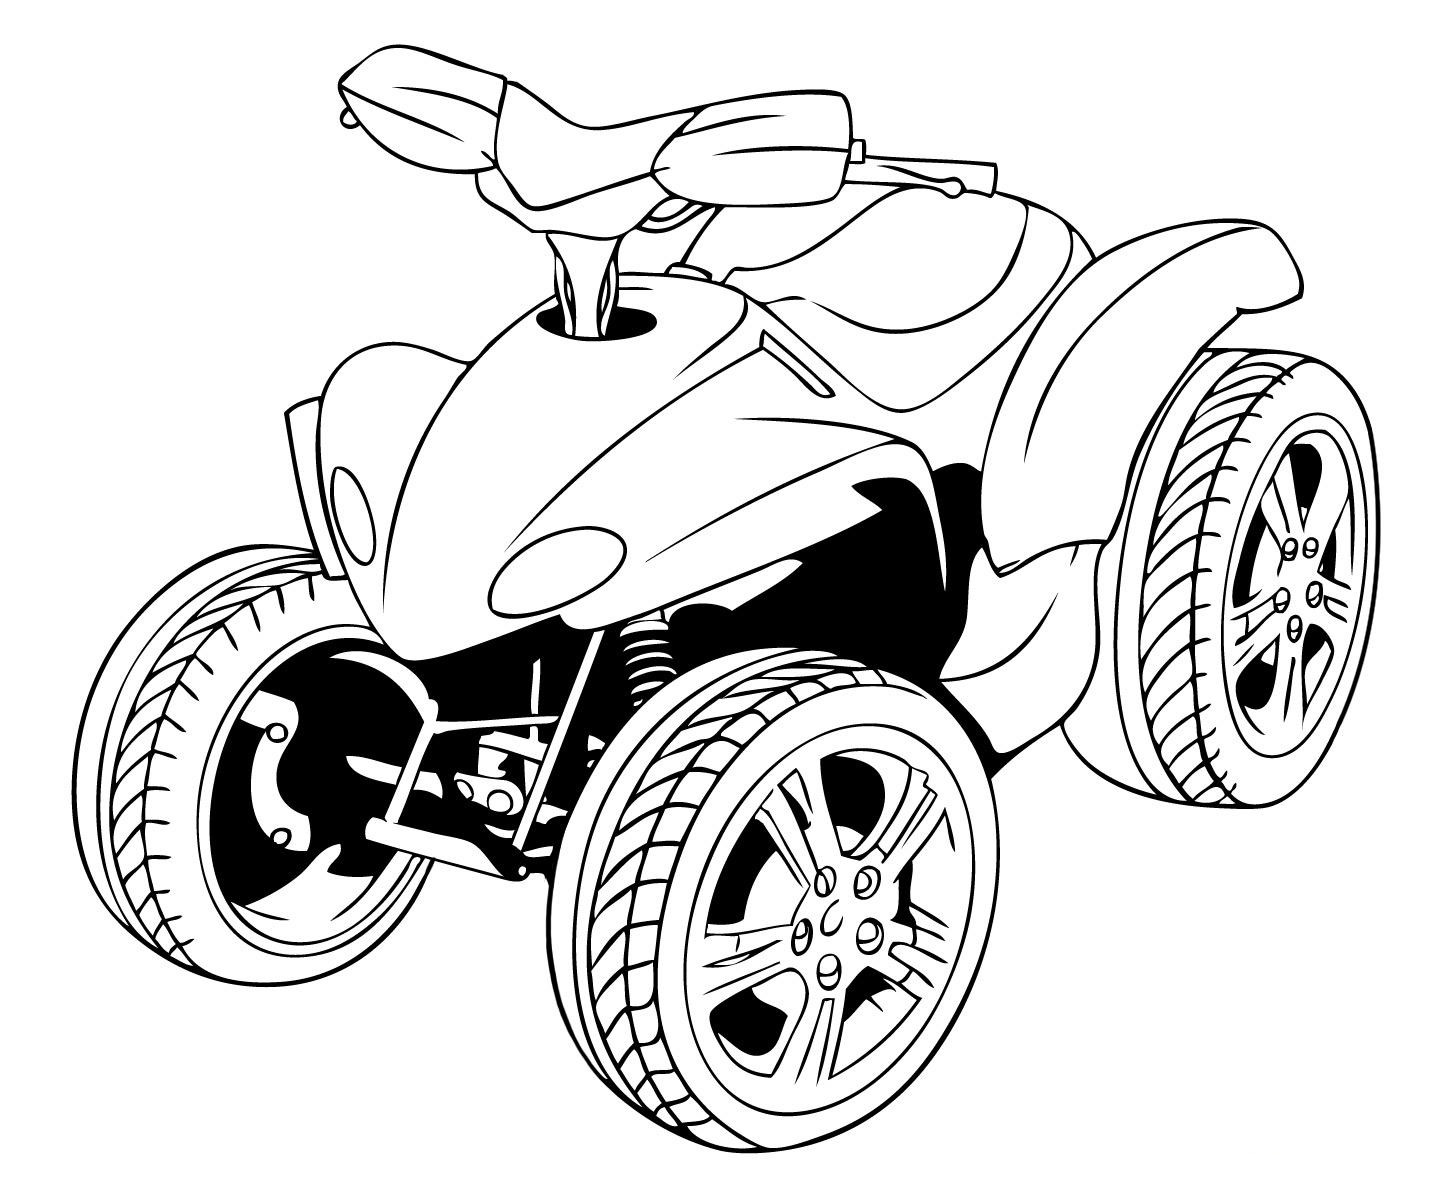 Atv Coloring Pages also Colouring Pages Jurassic World Indominous Rex Coloring in addition Honda Xl175 as well Atv Coloring together with Wiring Diagram For Yamaha 350 Big Bear. on yamaha atv raptor